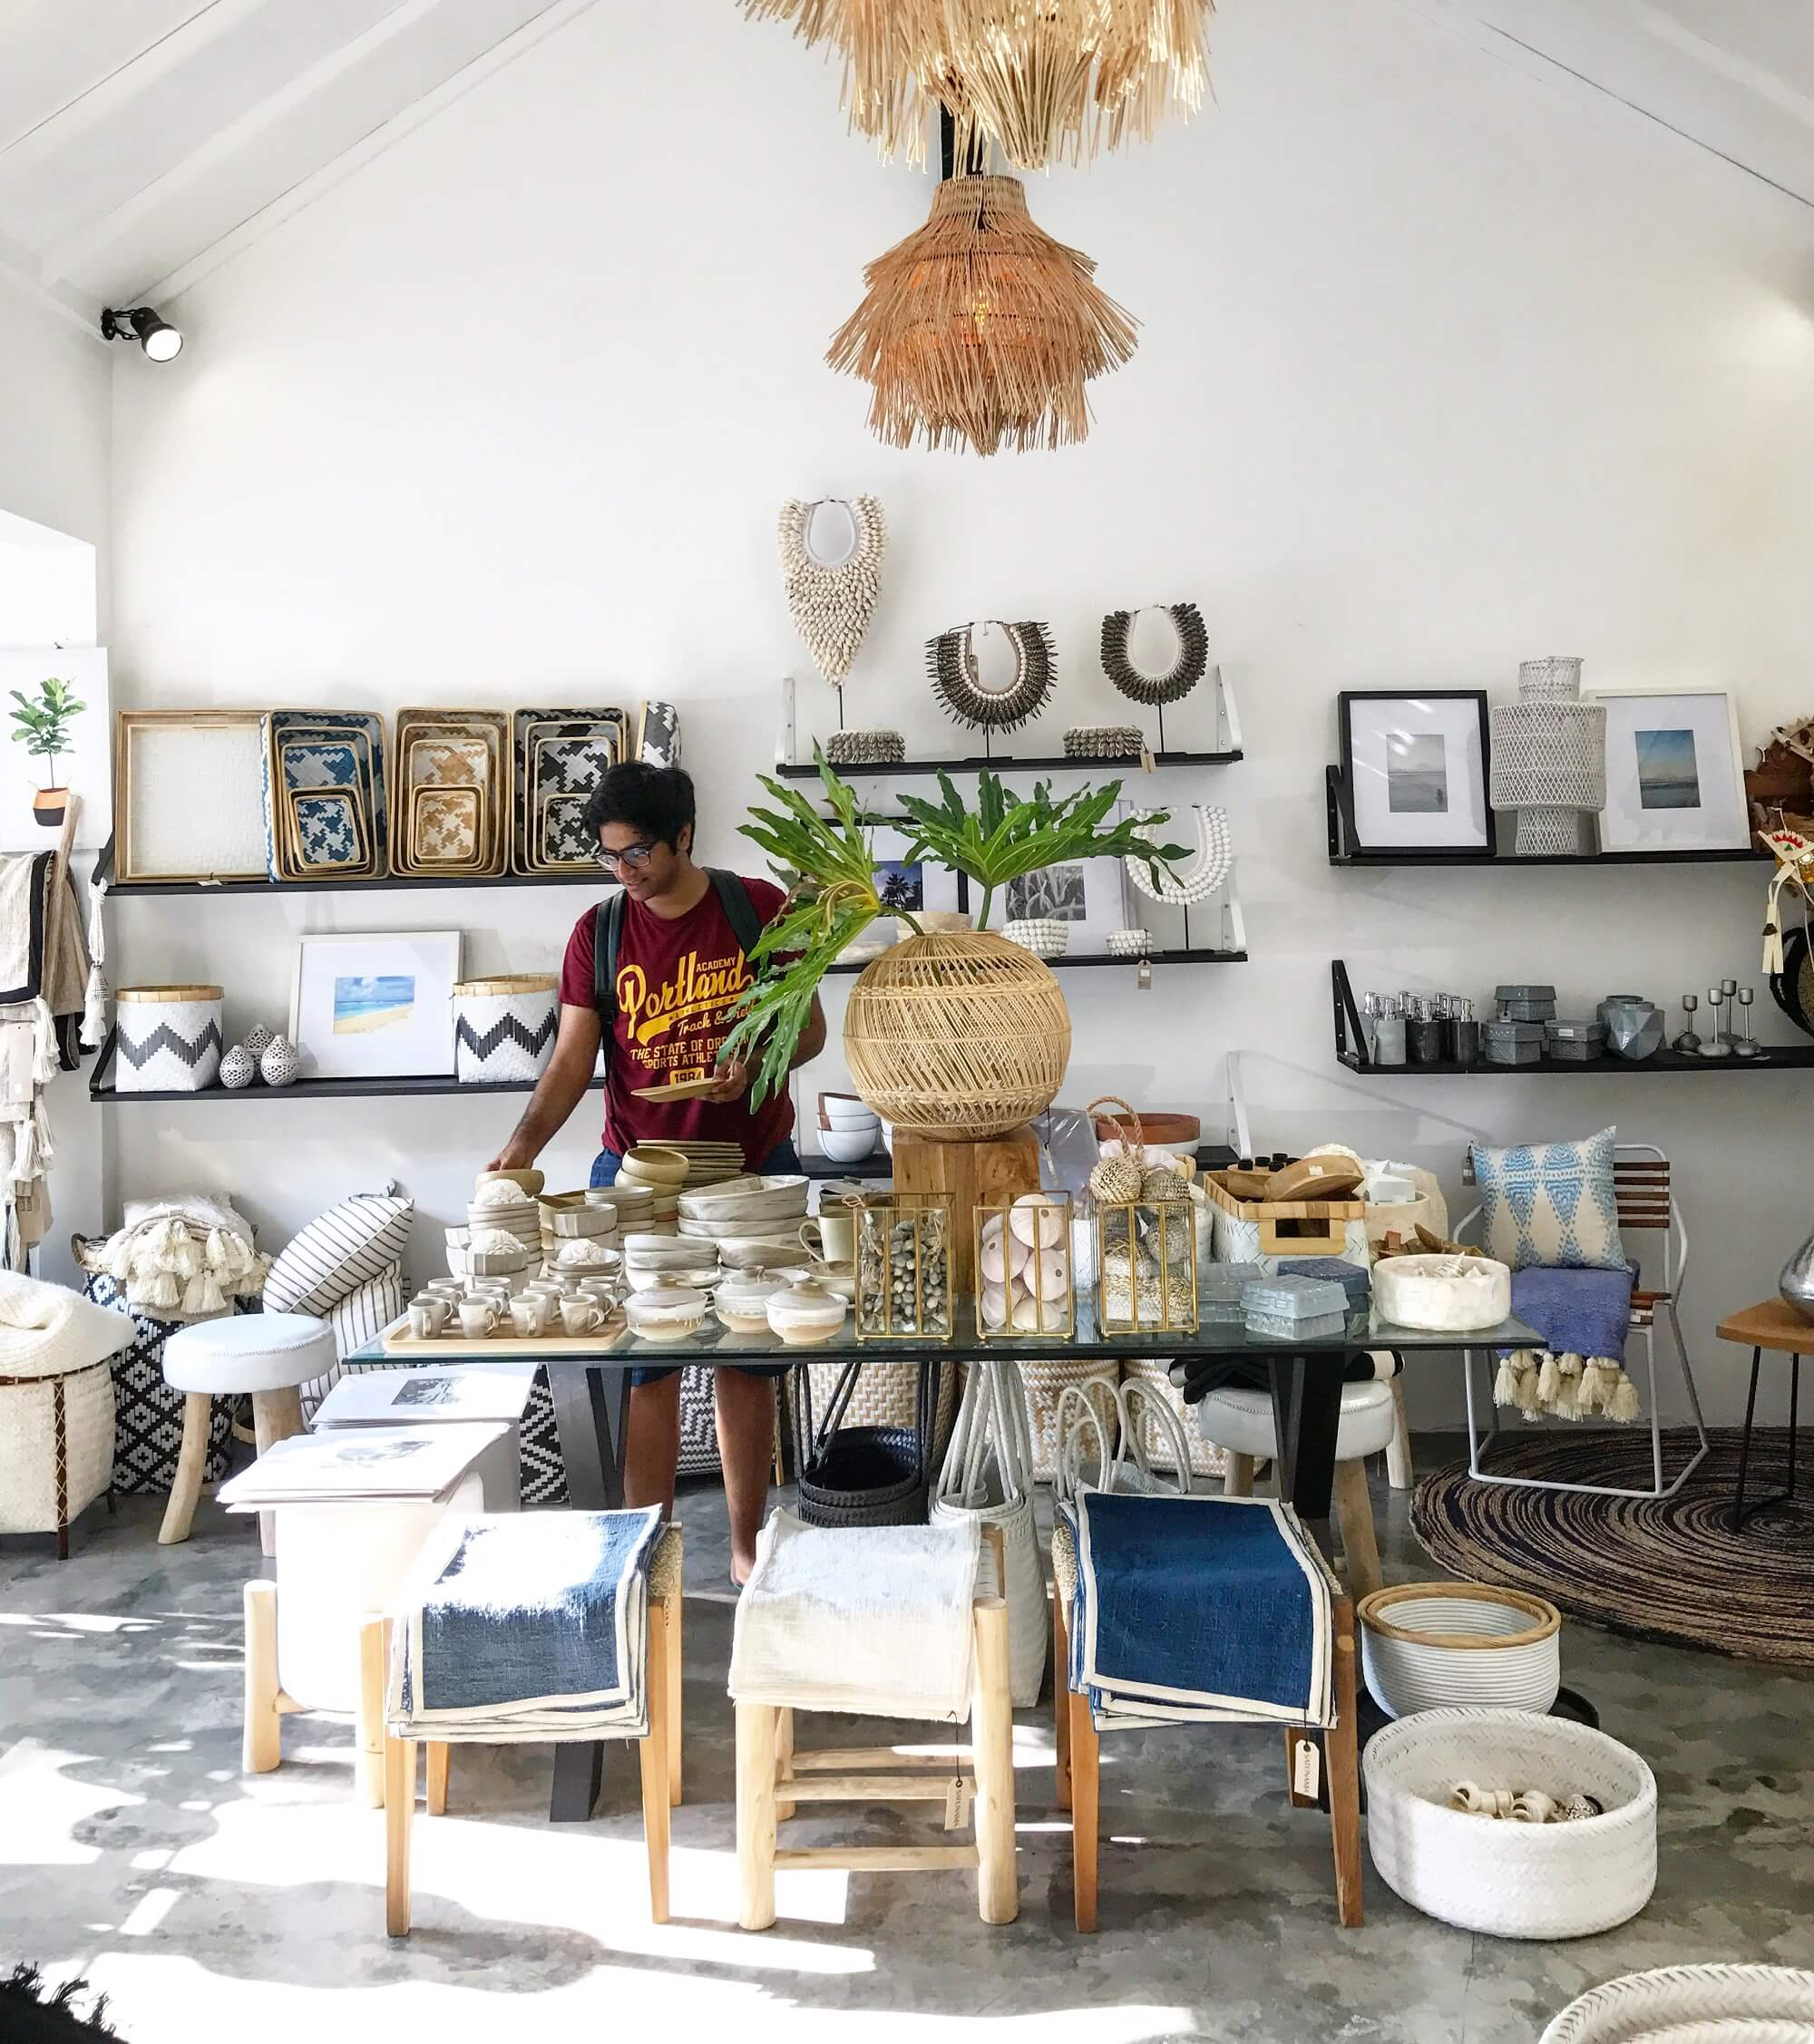 BEST CERAMIC SHOPS IN BALI - Bake with Shivesh